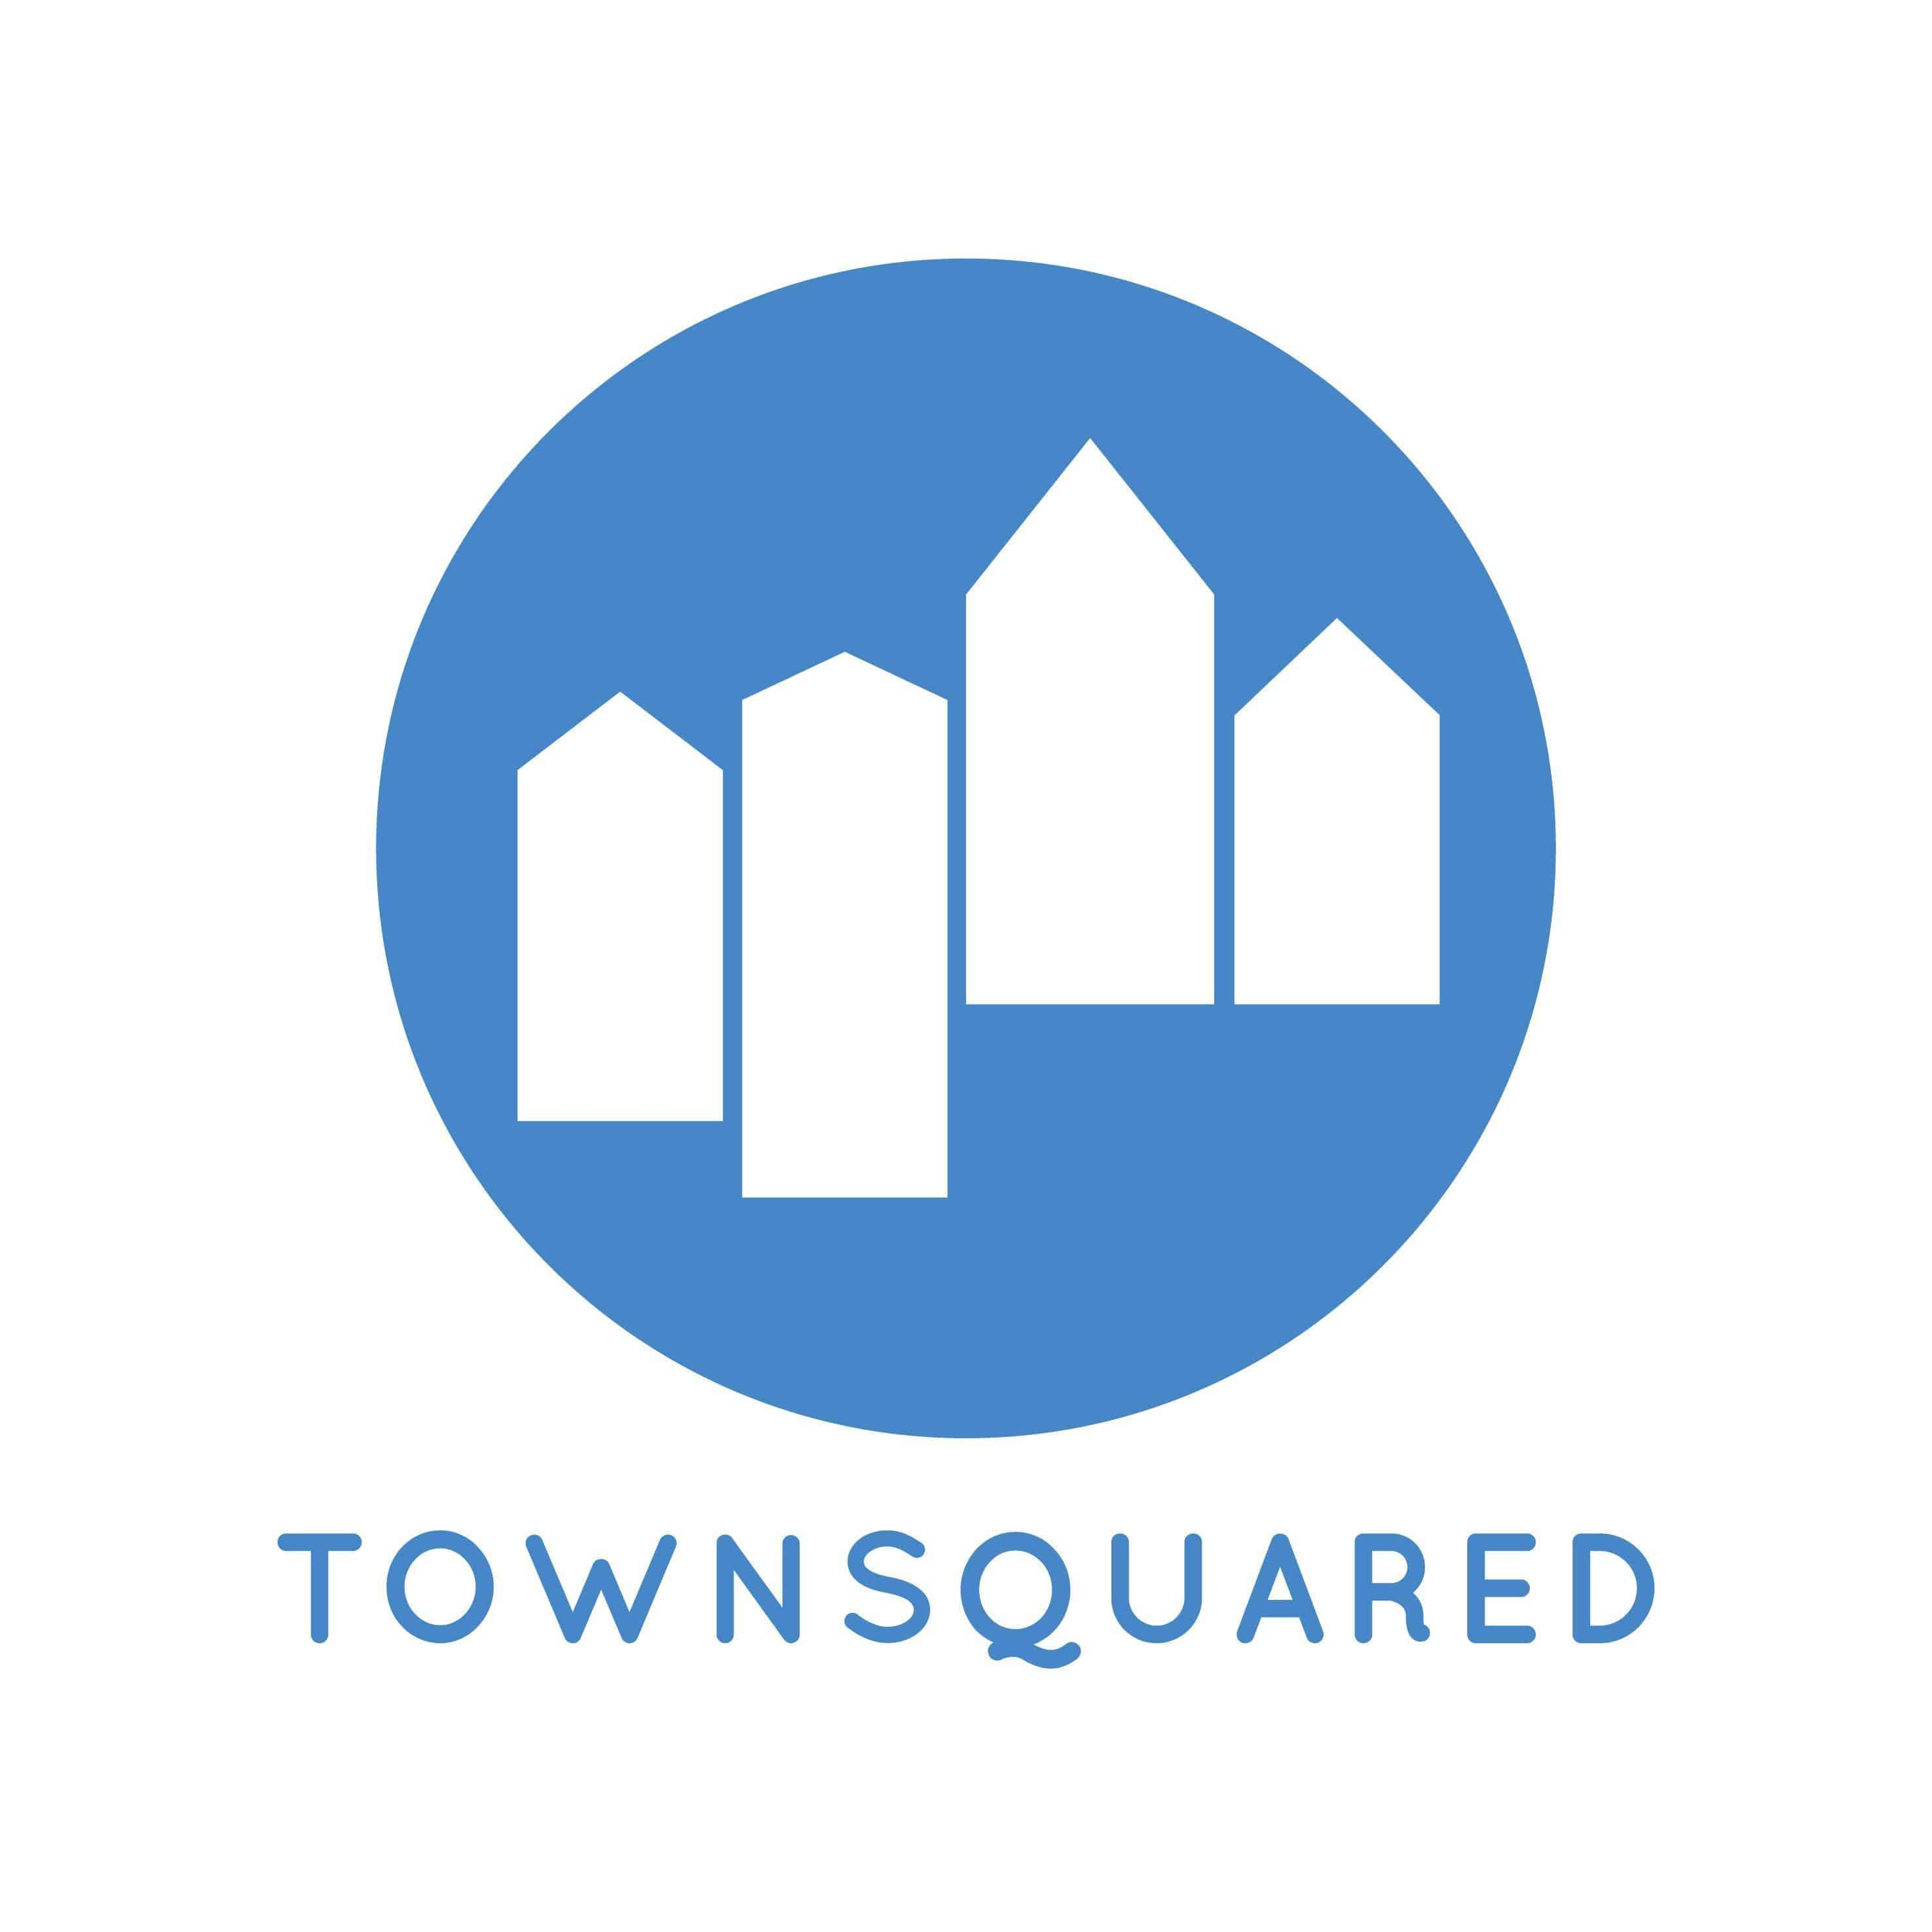 Follow Us on Townsquared